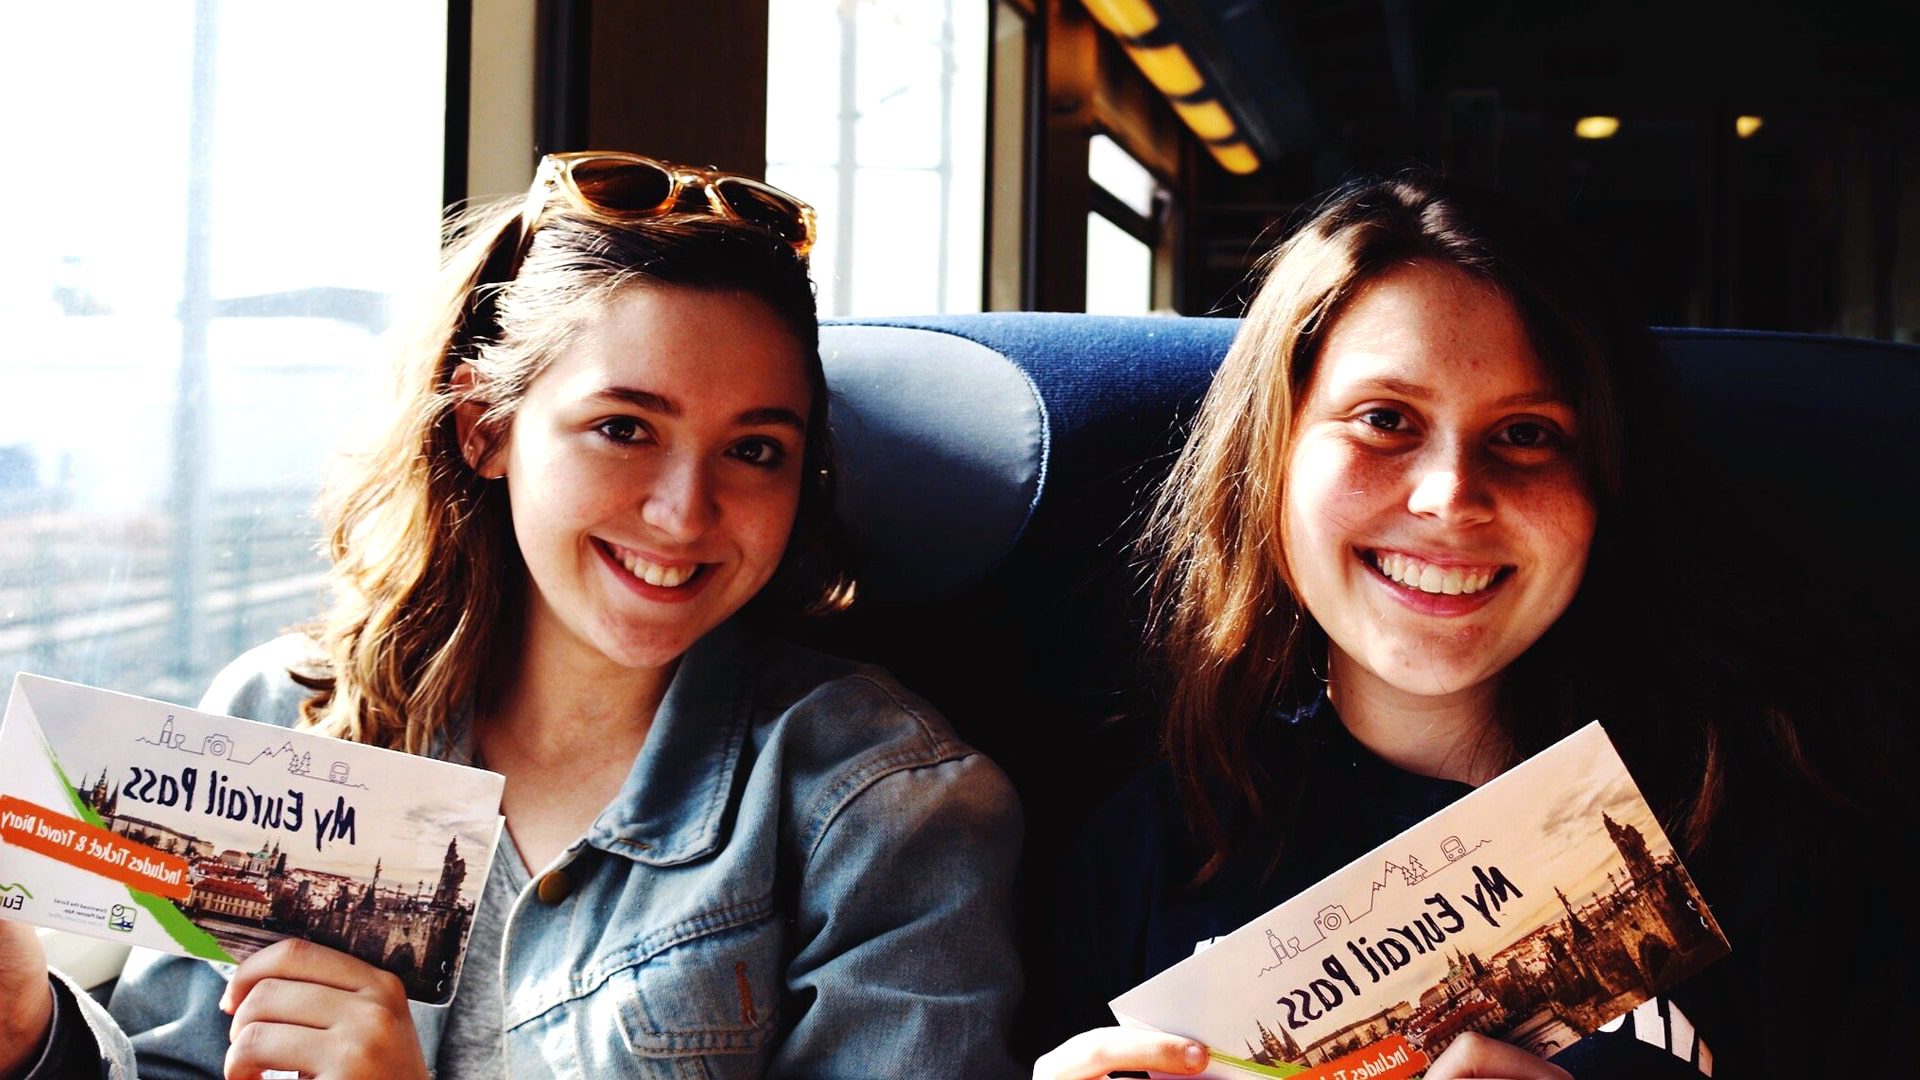 CQ9电子游戏 普罗维登斯 student katelyn colantonio (right) on her whirlwind Eurail adventure